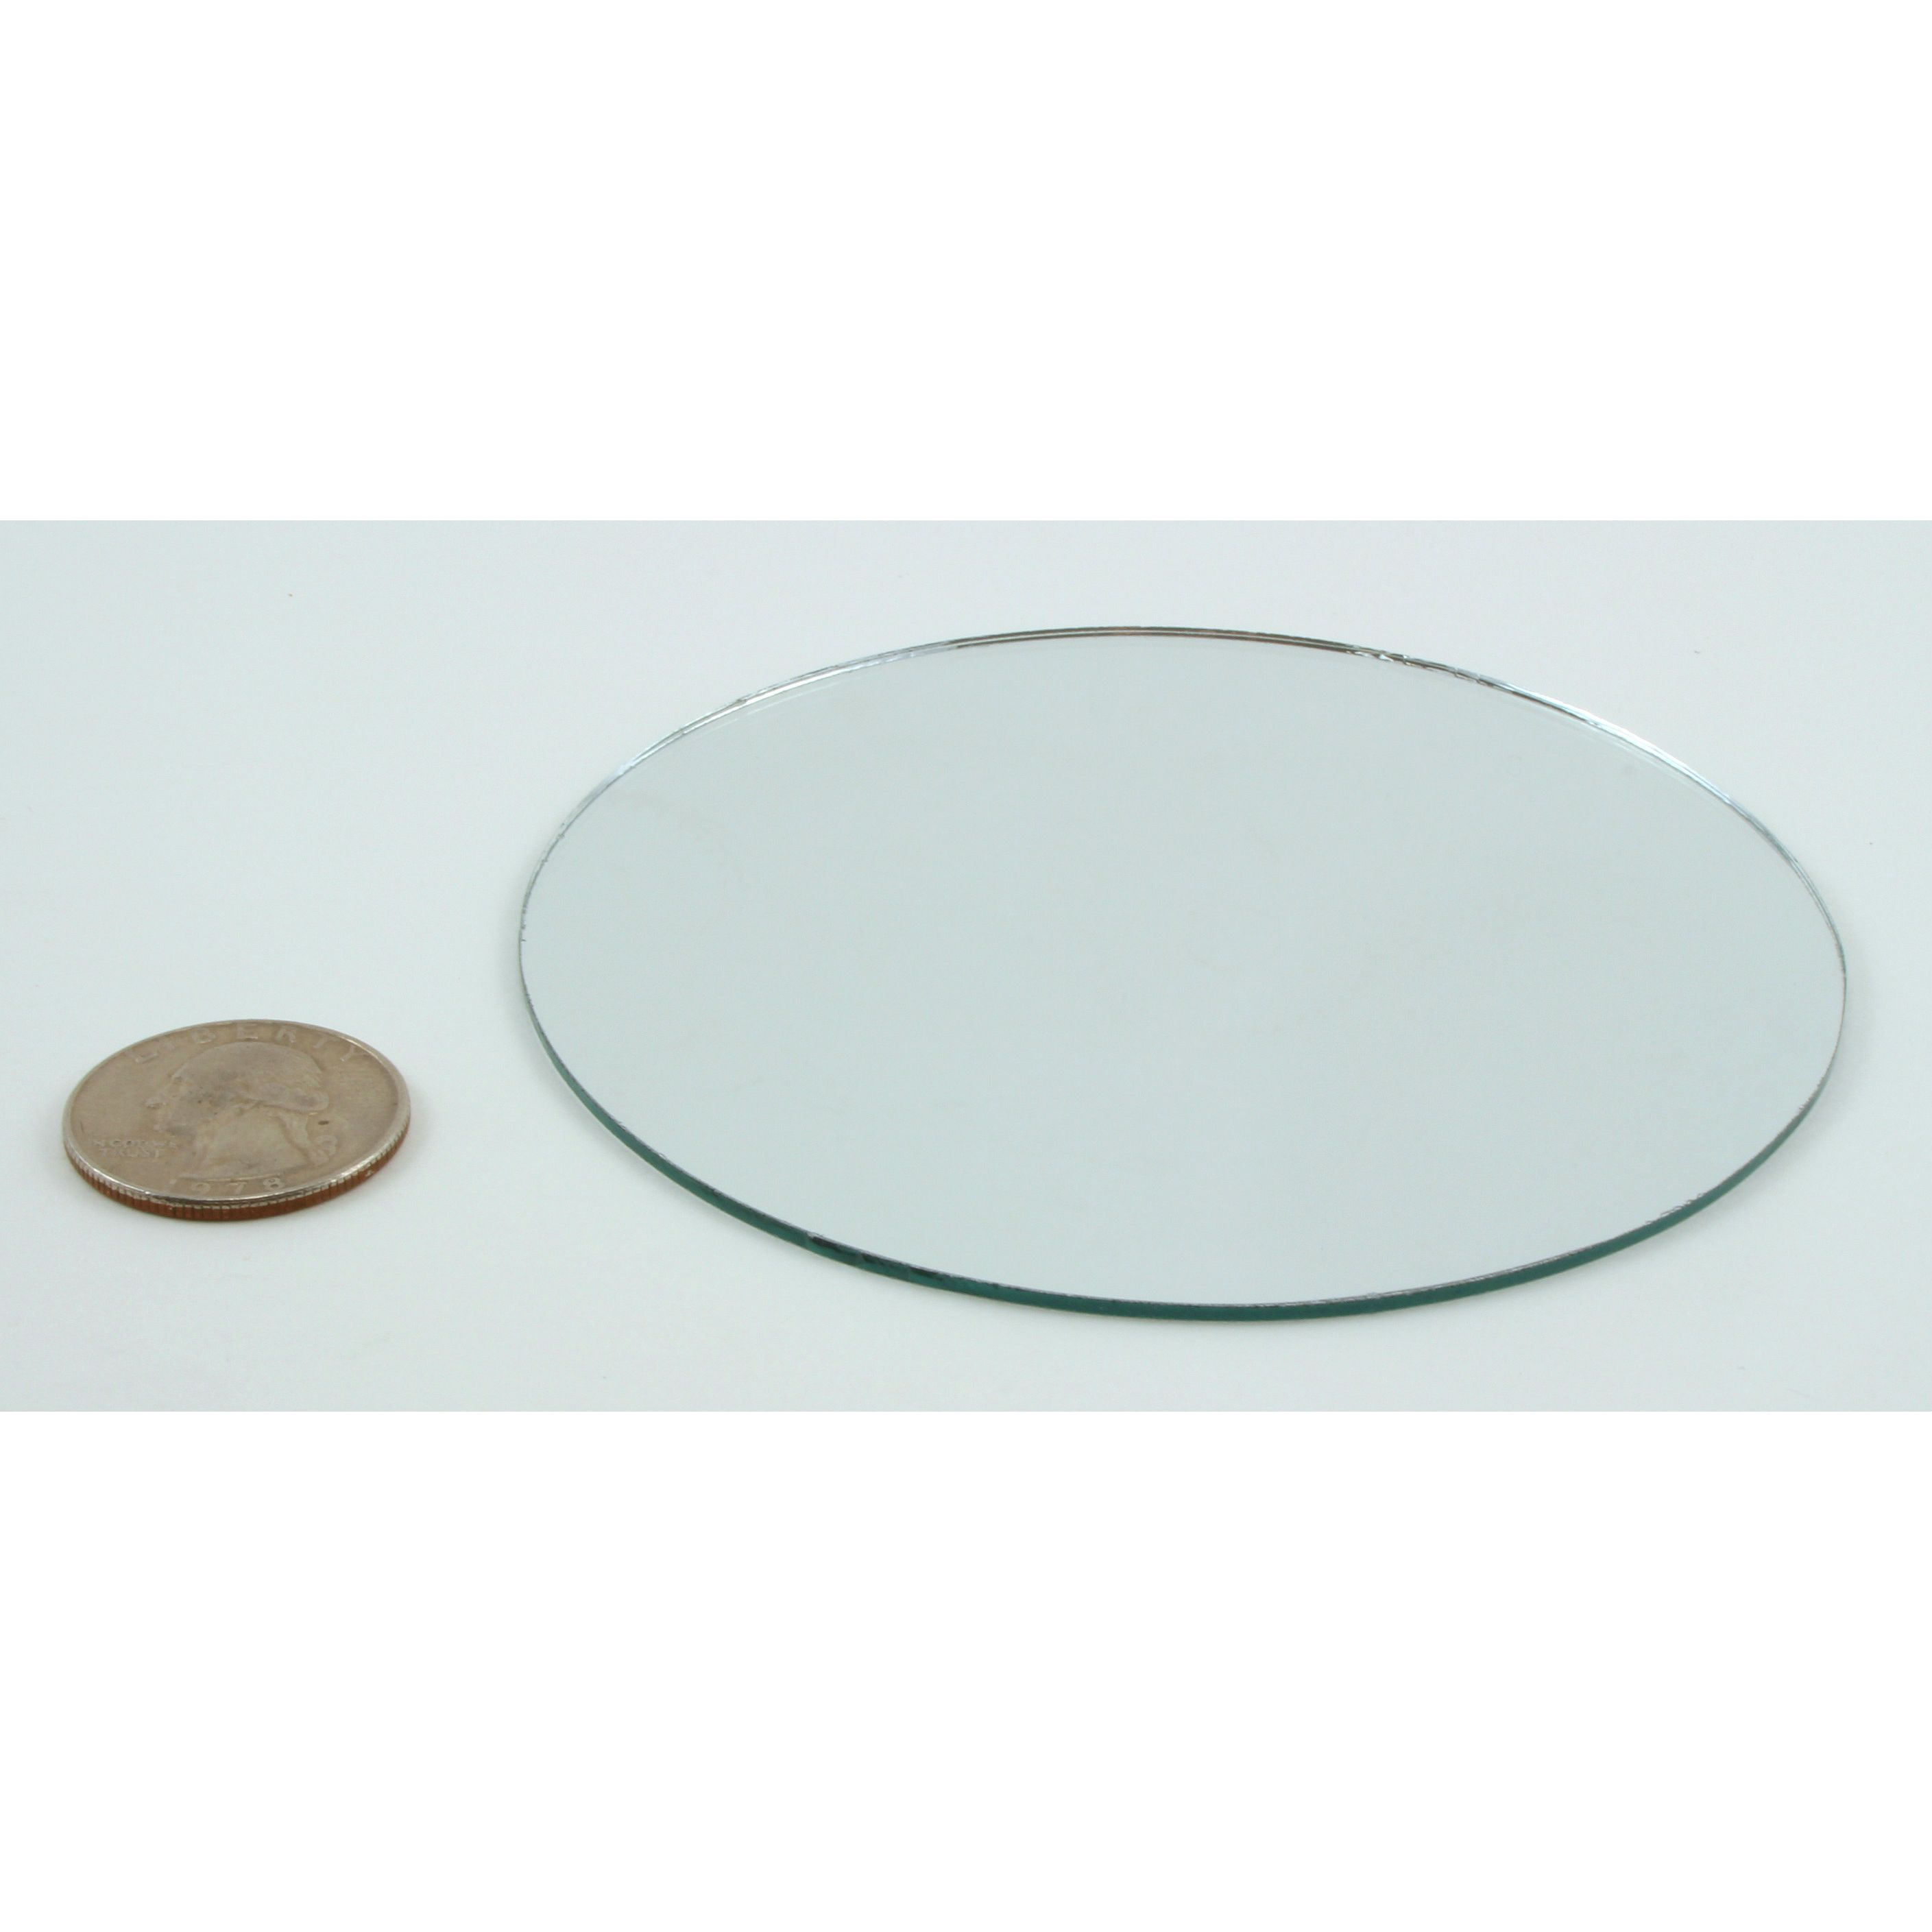 Small Mirror Pieces: 4 Inch Glass Craft Small Round Mirror 24 Pieces Mosaic